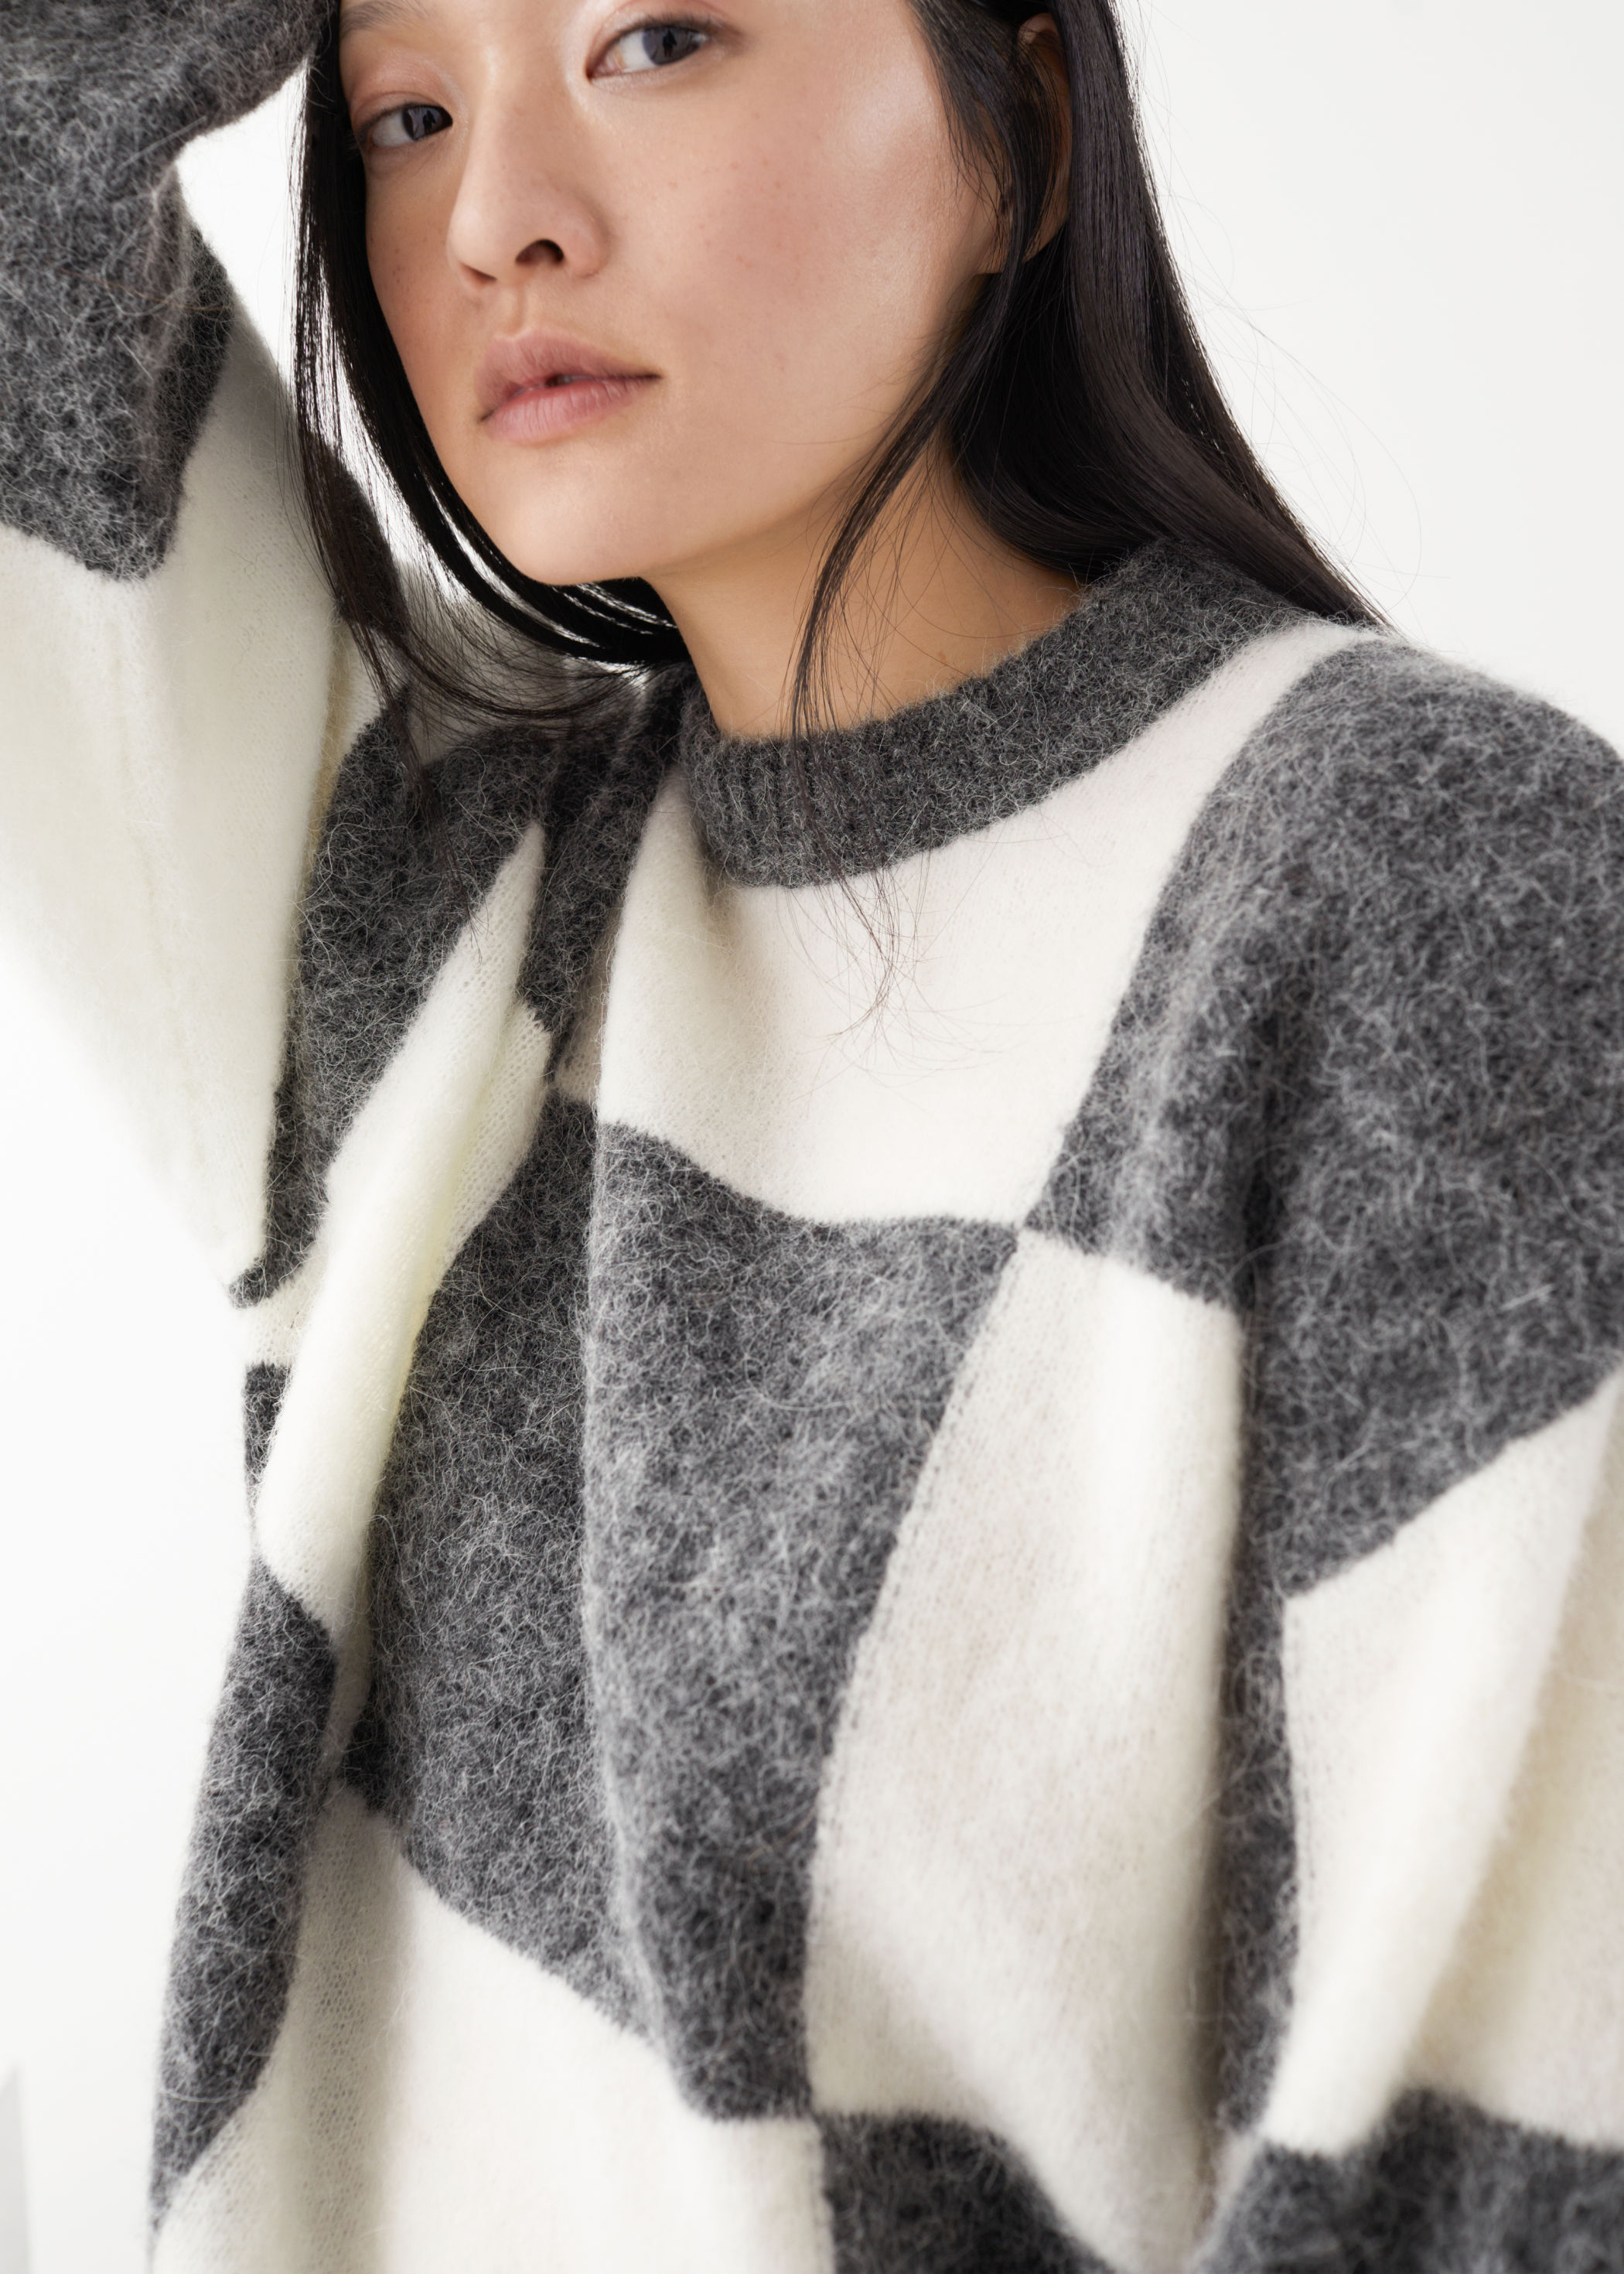 2020 OEM winter chunky mohair sweater women Alpaca Blend Jacquard knit jumper hoodie sweaters with boxy silhouette.